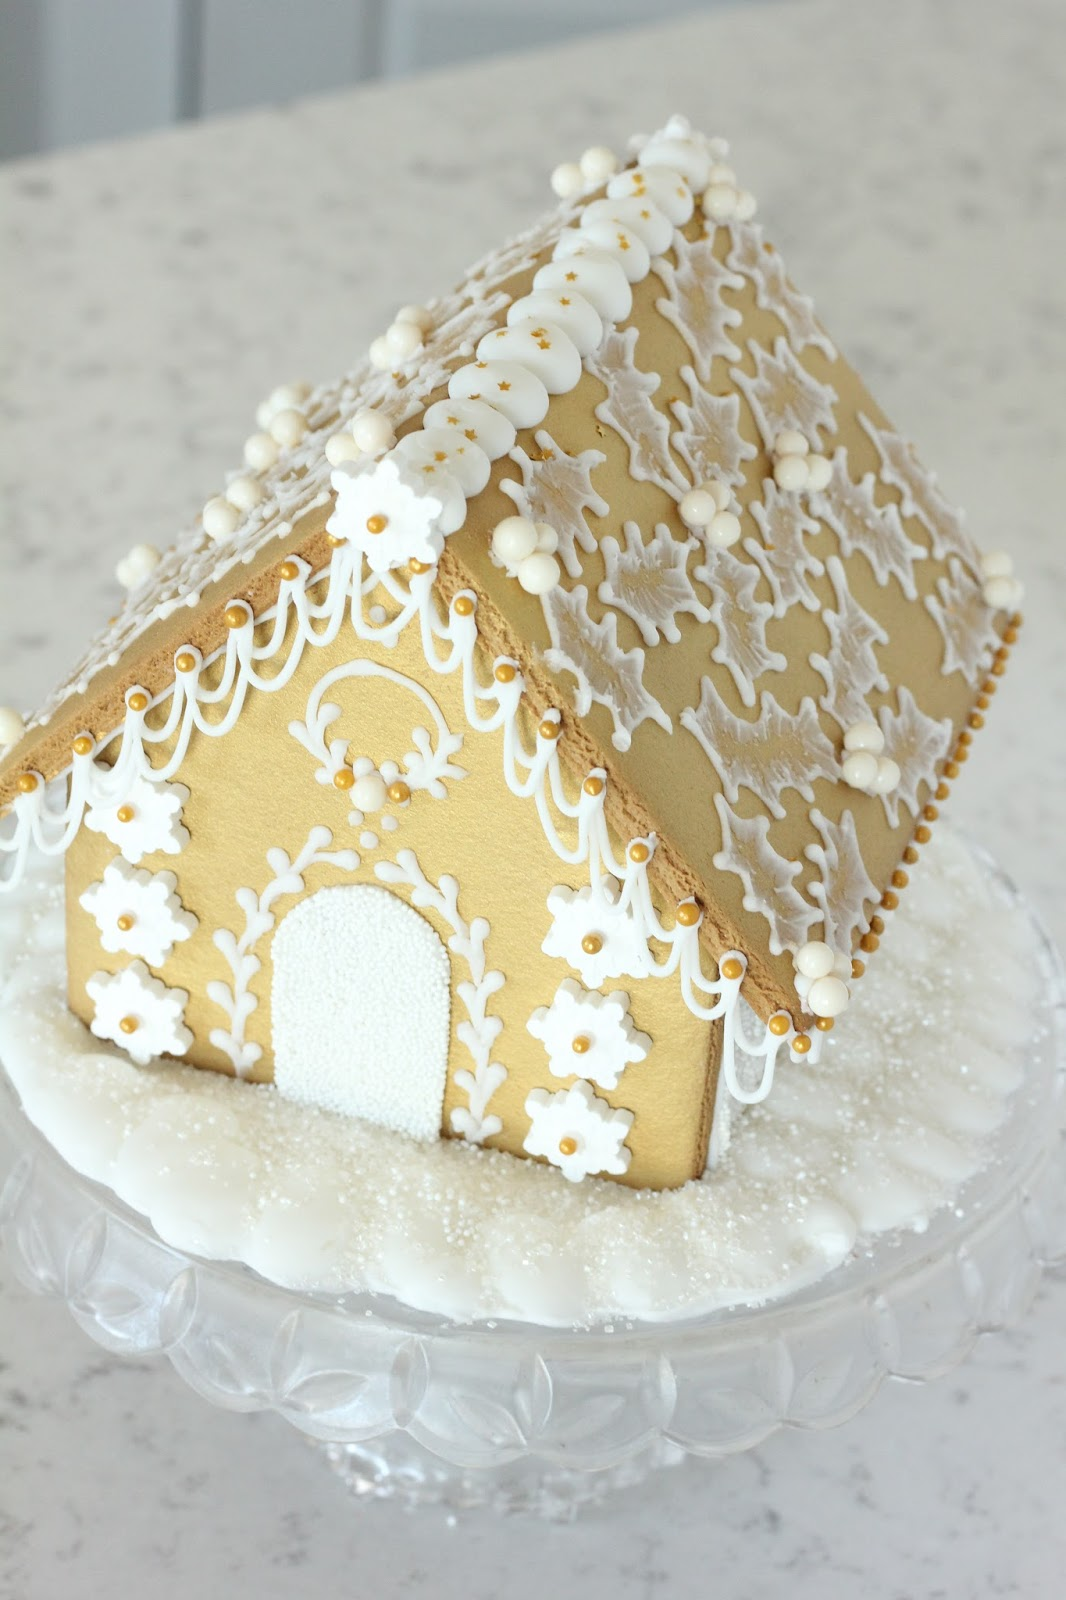 White and Gold Gingerbread House on butterfly roof designs, church roof designs, gingerbread house chimneys, gingerbread house masonry, garden roof designs, birdhouse roof designs, snow roof designs, gingerbread house details, gingerbread house roofing,